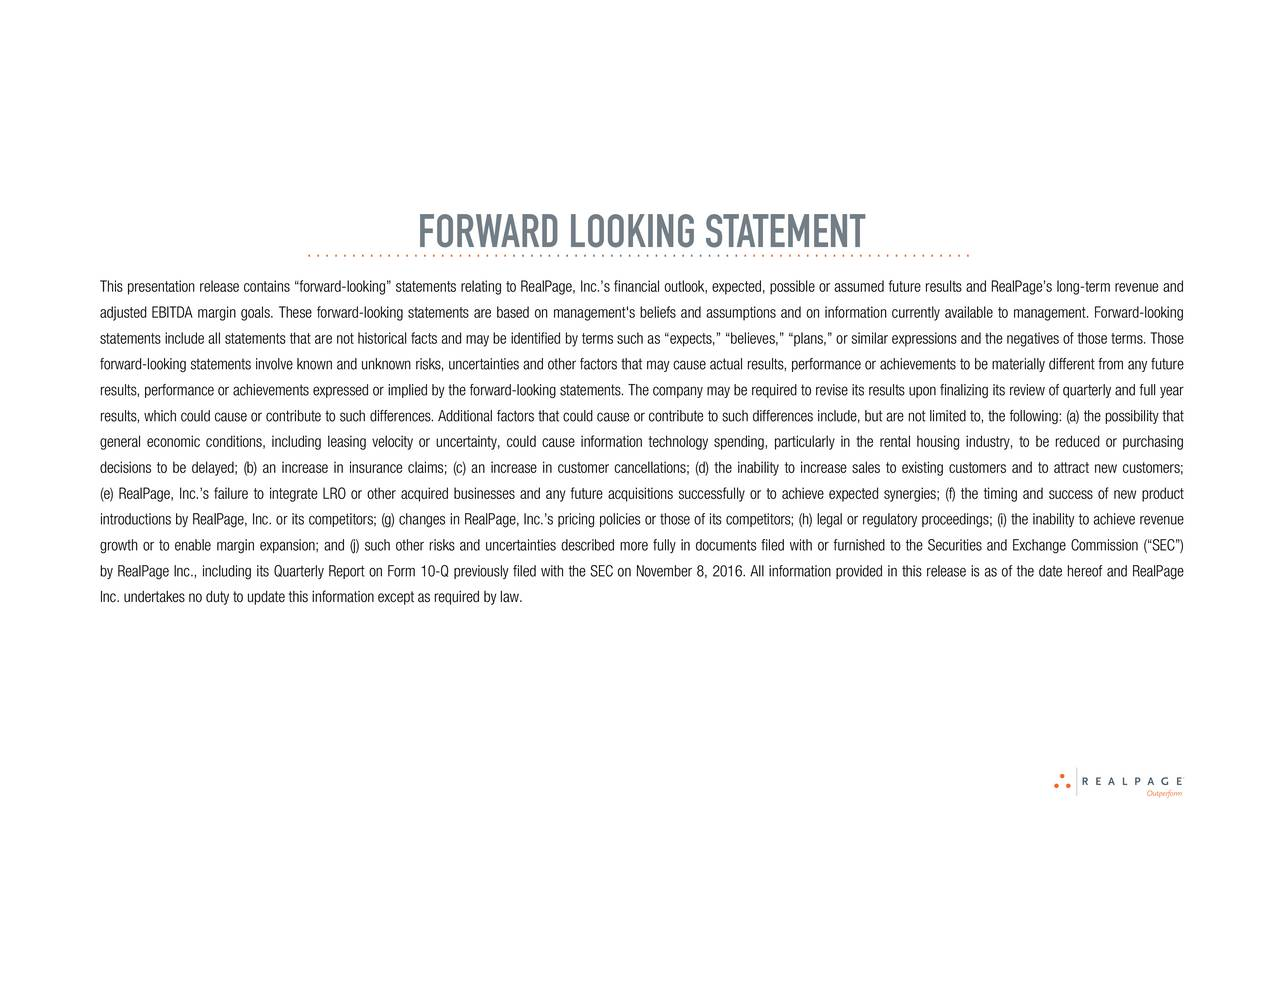 ....................... .......................... .......................... This presentation release contains forward-looking statements relating to RealPage, Inc.s financial outlook, expected, possible or assumed future results and RealPages long-term revenue and adjusted EBITDA margin goals. These forward-looking statements are based on management's beliefs and assumptions and on information currently available to management. Forward-looking statements include all statements that are not historical facts and may be identified by terms such as expects, believes, plans, or similar expressions and the negatives of those terms. Those forward-looking statements involve known and unknown risks, uncertainties and other factors that may cause actual results, performance or achievements to be materially different from any future results, performance or achievements expressed or implied by the forward-looking statements. The company may be required to revise its results upon finalizing its review of quarterly and full year results, which could cause or contribute to such differences. Additional factors that could cause or contribute to such differences include, but are not limited to, the following: (a) the possibility that general economic conditions, including leasing velocity or uncertainty, could cause information technology spending, particularly in the rental housing industry, to be reduced or purchasing decisions to be delayed; (b) an increase in insurance claims; (c) an increase in customer cancellations; (d) the inability to increase sales to existing customers and to attract new customers; (e) RealPage, Inc.s failure to integrate LRO or other acquired businesses and any future acquisitions successfully or to achieve expected synergies; (f) the timing and success of new product introductions by RealPage, Inc. or its competitors; (g) changes in RealPage, Inc.s pricing policies or those of its competitors; (h) legal or regulatory proceedings; (i) the inability to achieve revenue growth or to enable margin expansion; and (j) such other risks and uncertainties described more fully in documents filed with or furnished to the Securities and Exchange Commission (SEC) by RealPage Inc., including its Quarterly Report on Form 10-Q previously filed with the SEC on November 8, 2016. All information provided in this release is as of the date hereof and RealPage Inc. undertakes no duty to update this information except as required by law.